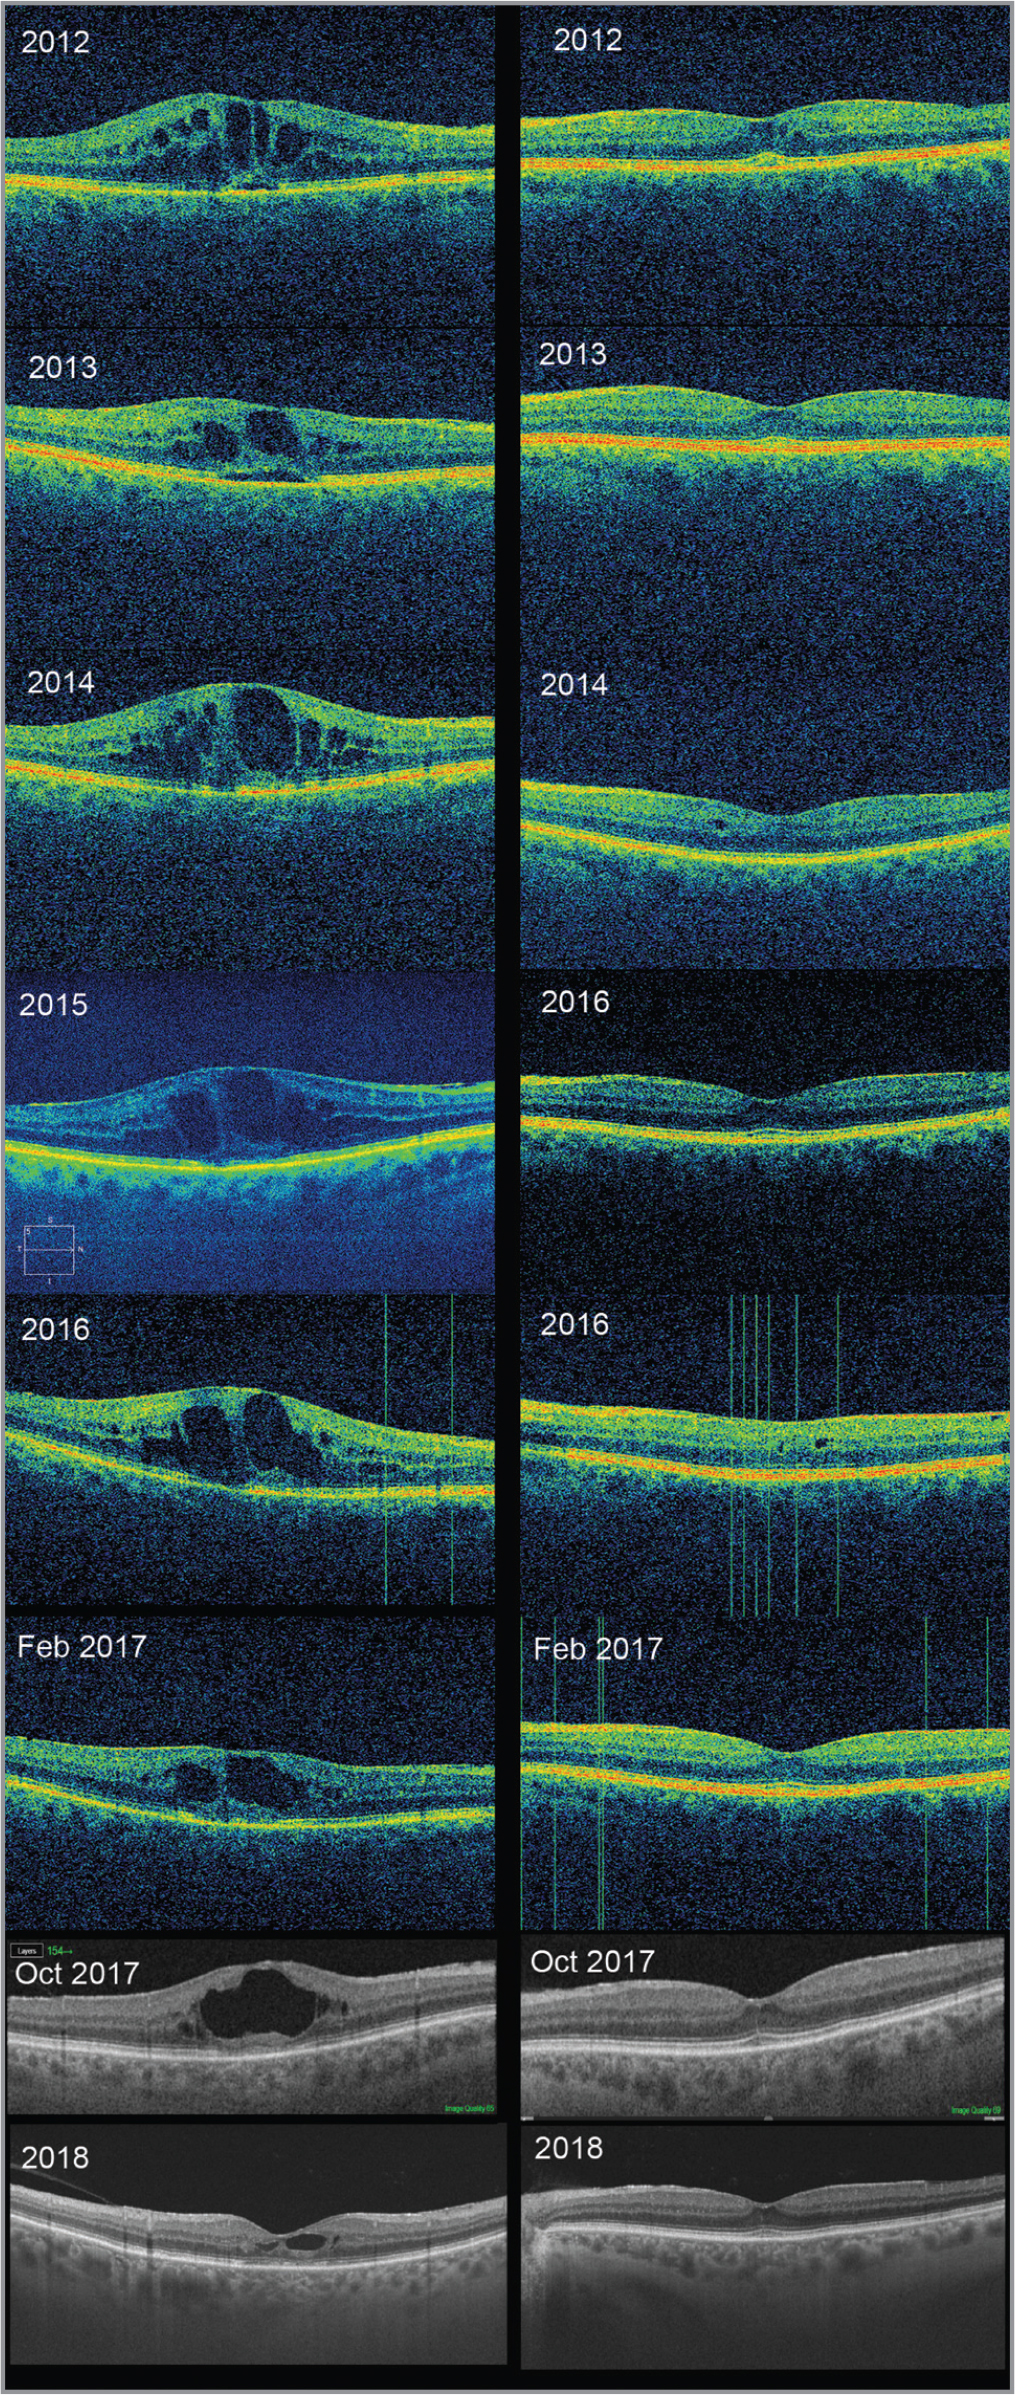 Optical coherence tomography (OCT) examination of the right eye (on the left) and of the left eye (on the right). In the right eye, horizontal OCT scan at baseline shows retinal thickening and cystoid spaces in the macular area. In particular, it is possible to discern foveal serous detachment with focal alteration of the ellipsoid zone. It is possible to see the atrophic evolution of the macular edema during the follow-up. In the left eye, OCT images show mild hyperreflective alteration at the fovea involving the outer retinal segments. Small intraretinal cysts are detectable. During the follow-up, the OCT images show the fluctuation of the intraretinal cysts.